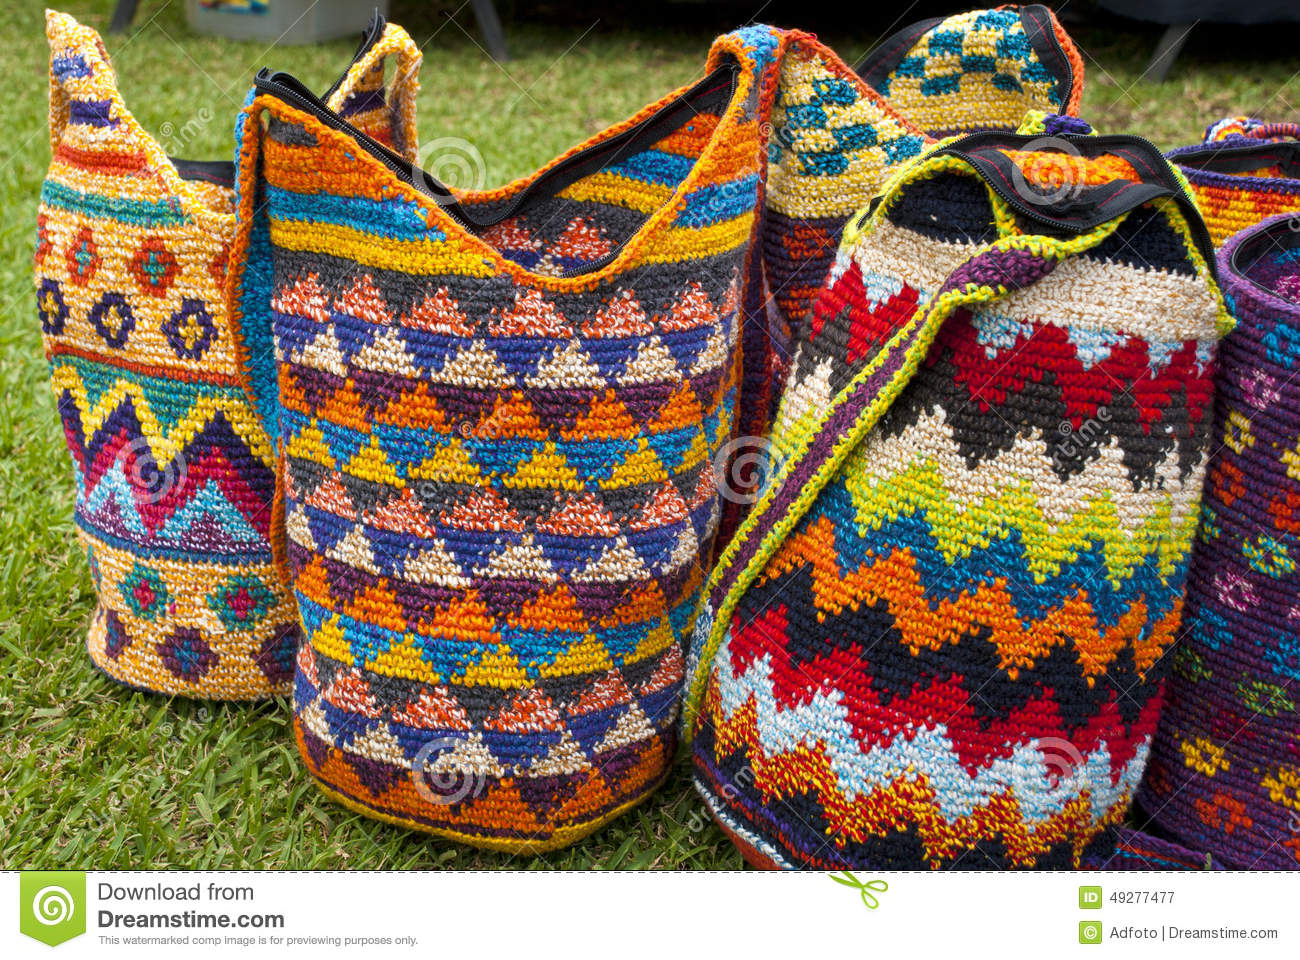 Crochet Pattern For Bucket Bag : Fashion - Crochet Handbags Stock Photo - Image: 49277477